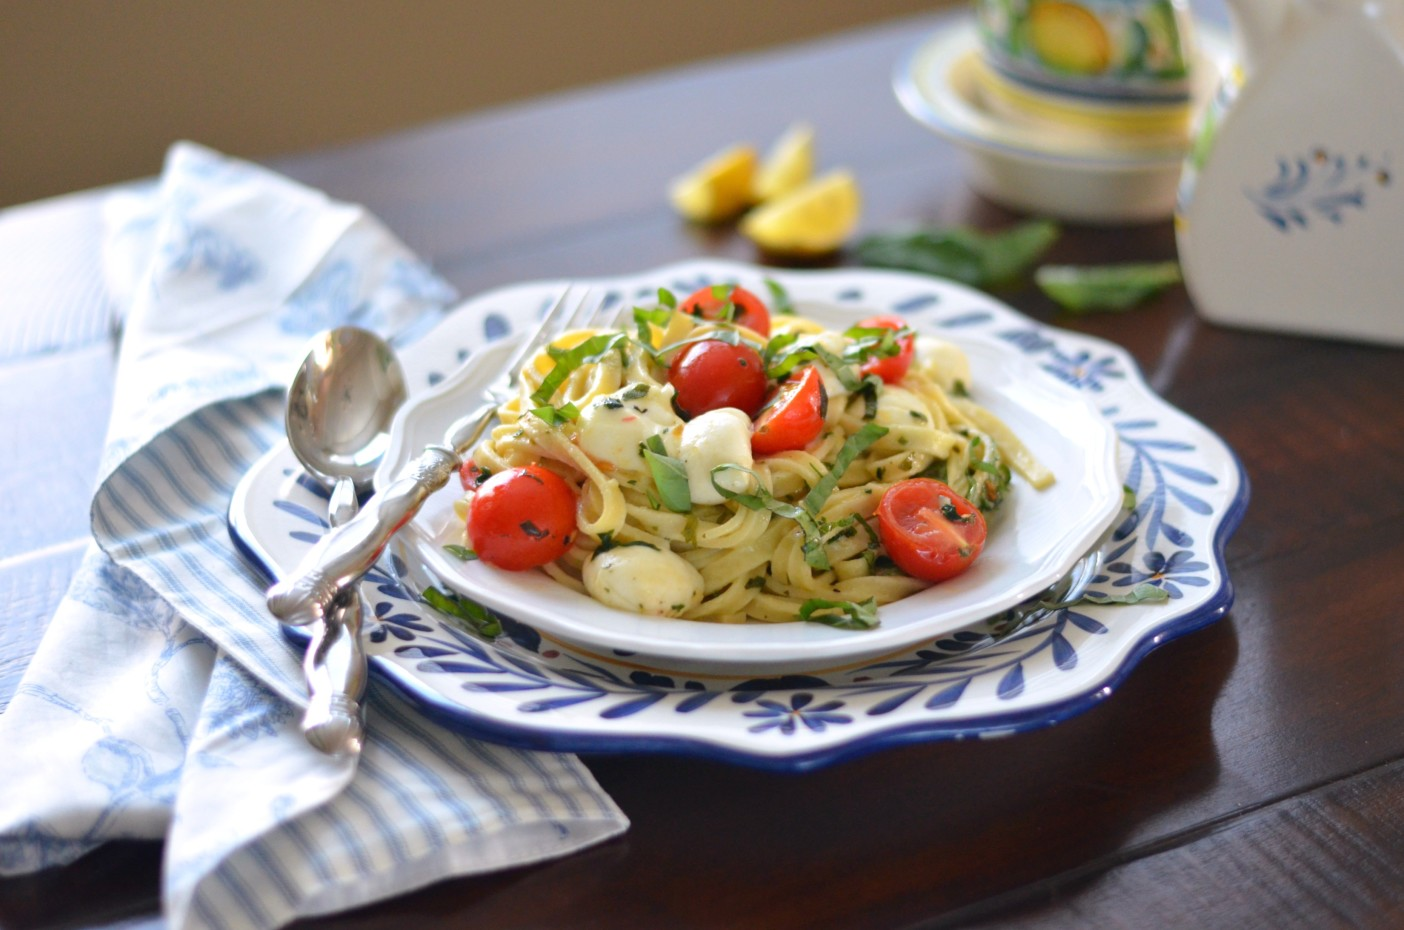 Fettuccine Caprese with fresh cherry tomatoes, basil and mozzarella balls